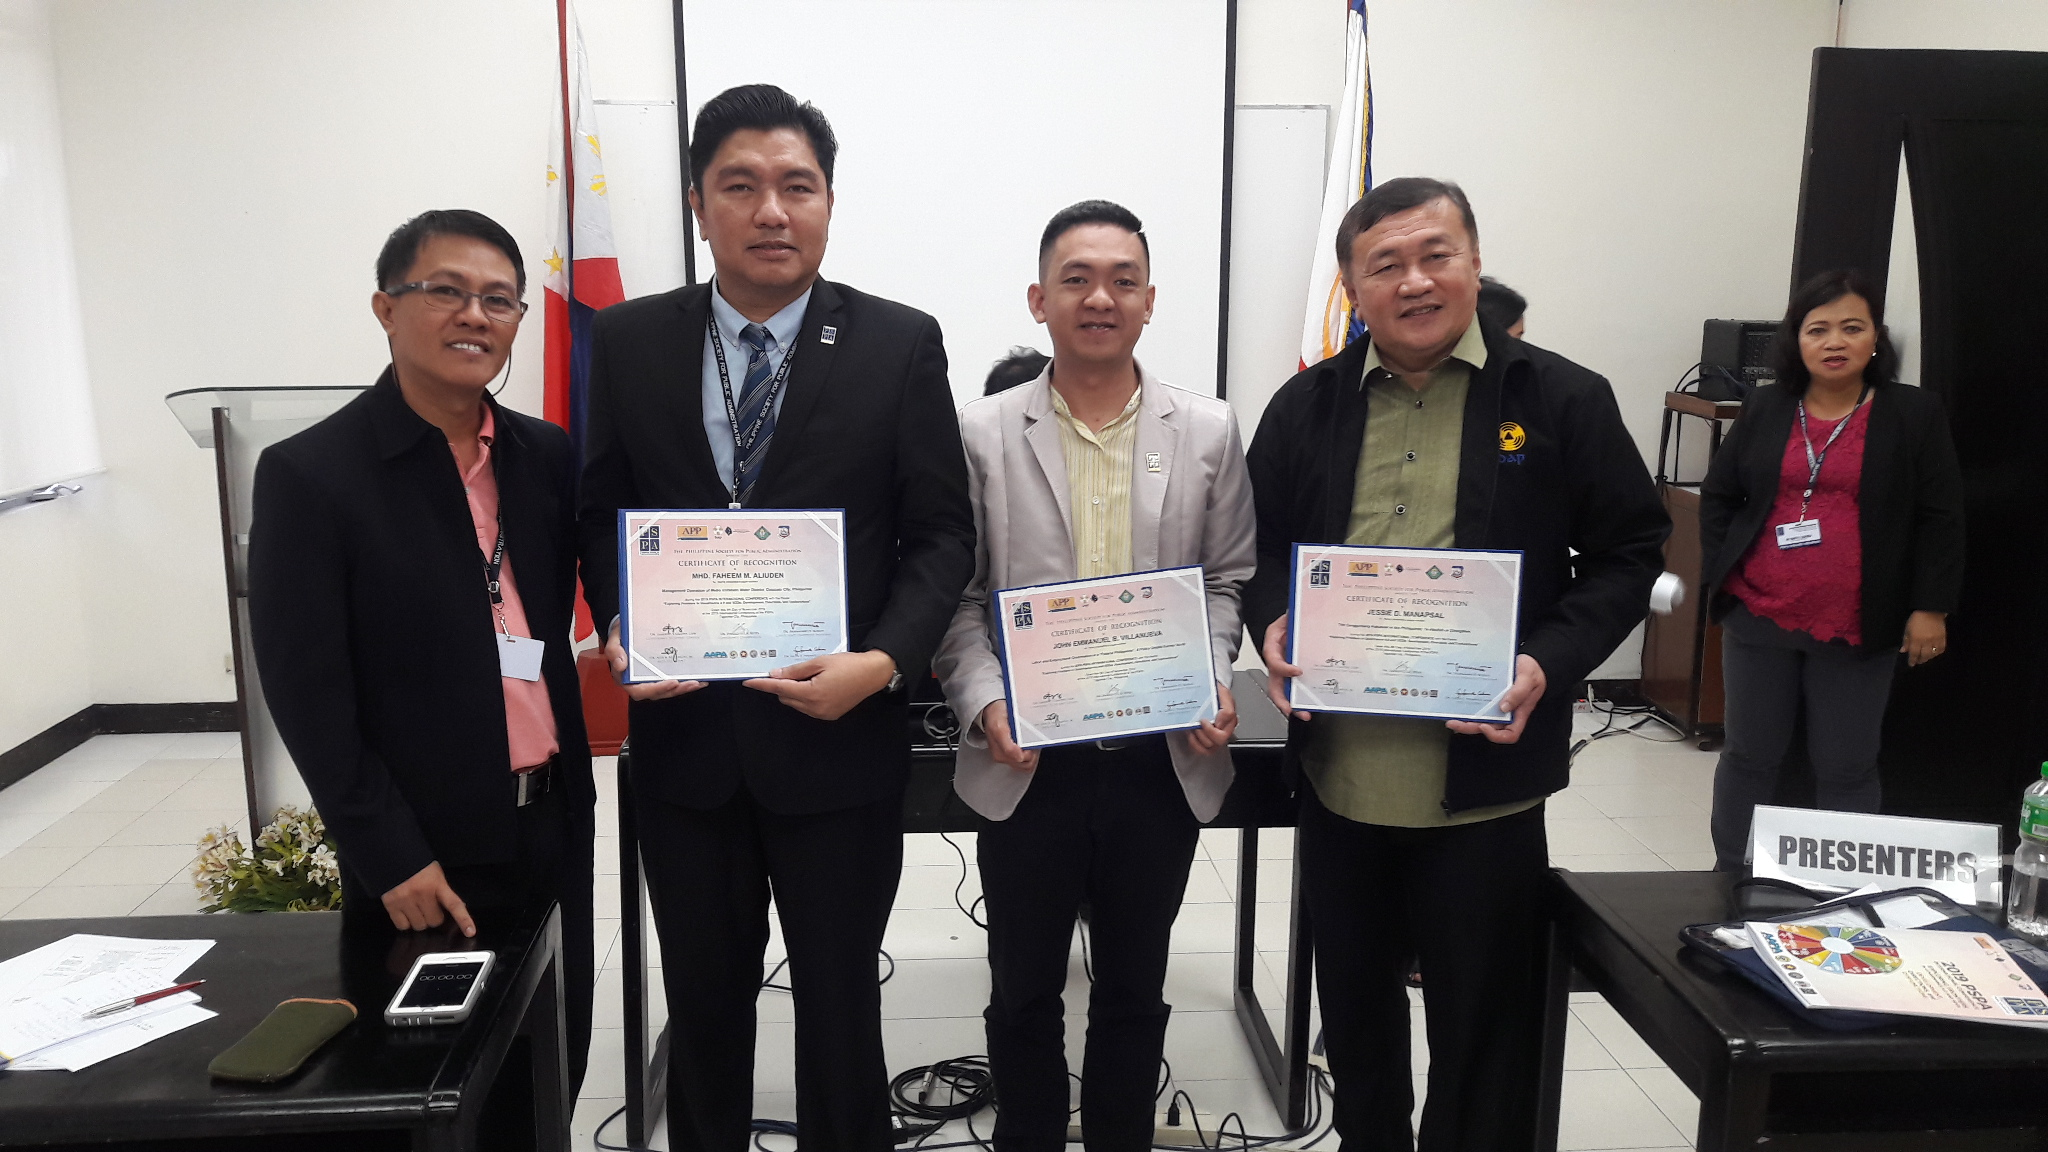 CCSPC Graduate College Faculty Presents Paper during the 2019 PSPA International Conference